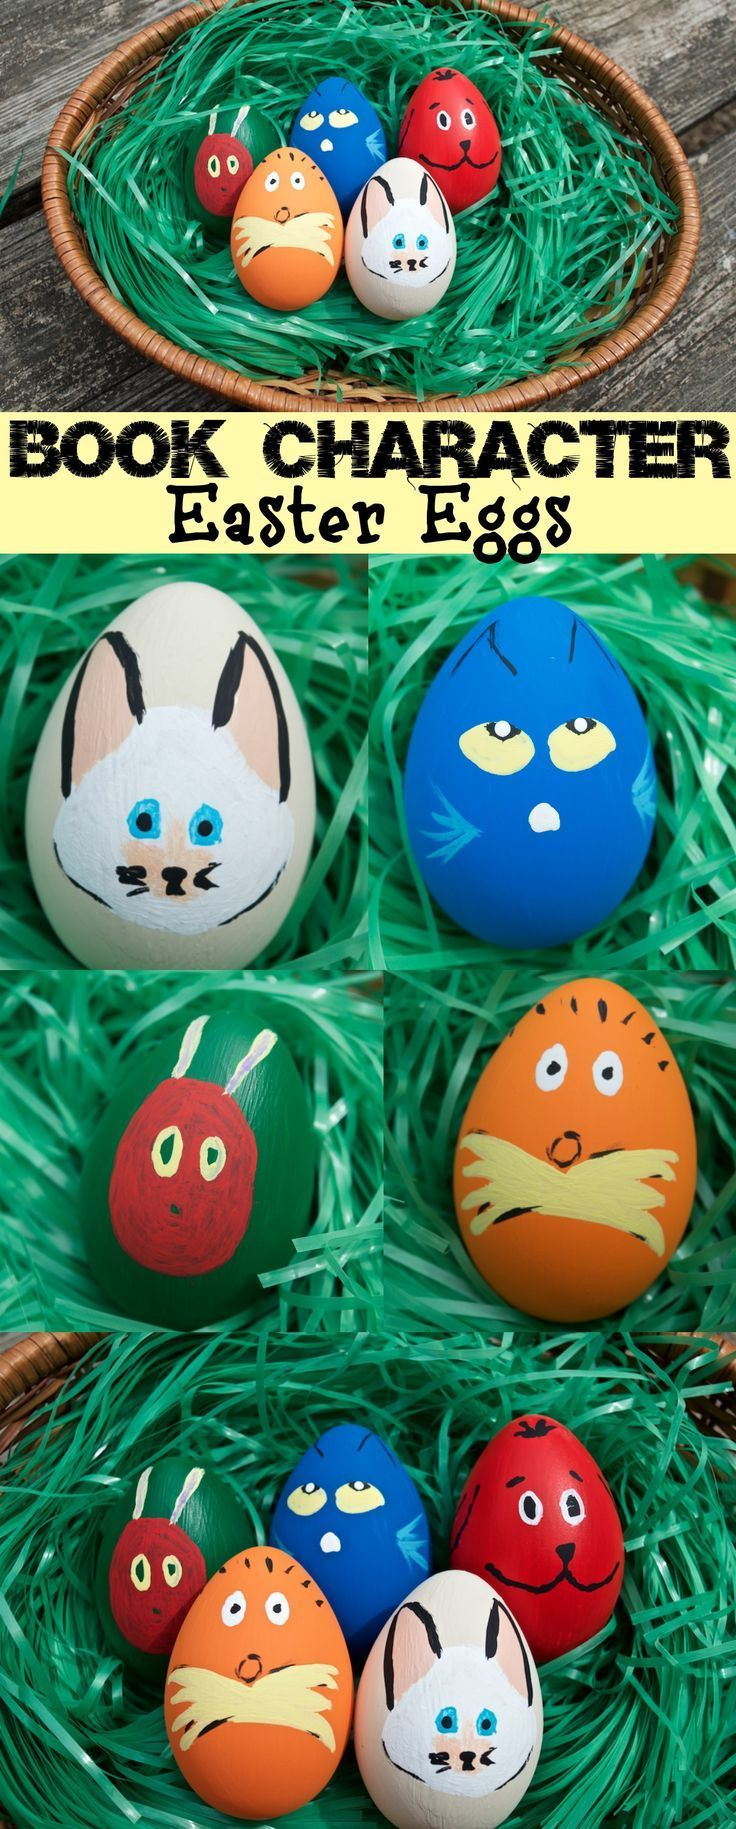 232 best Easter Activities for Kids images on Pinterest | Easter ...